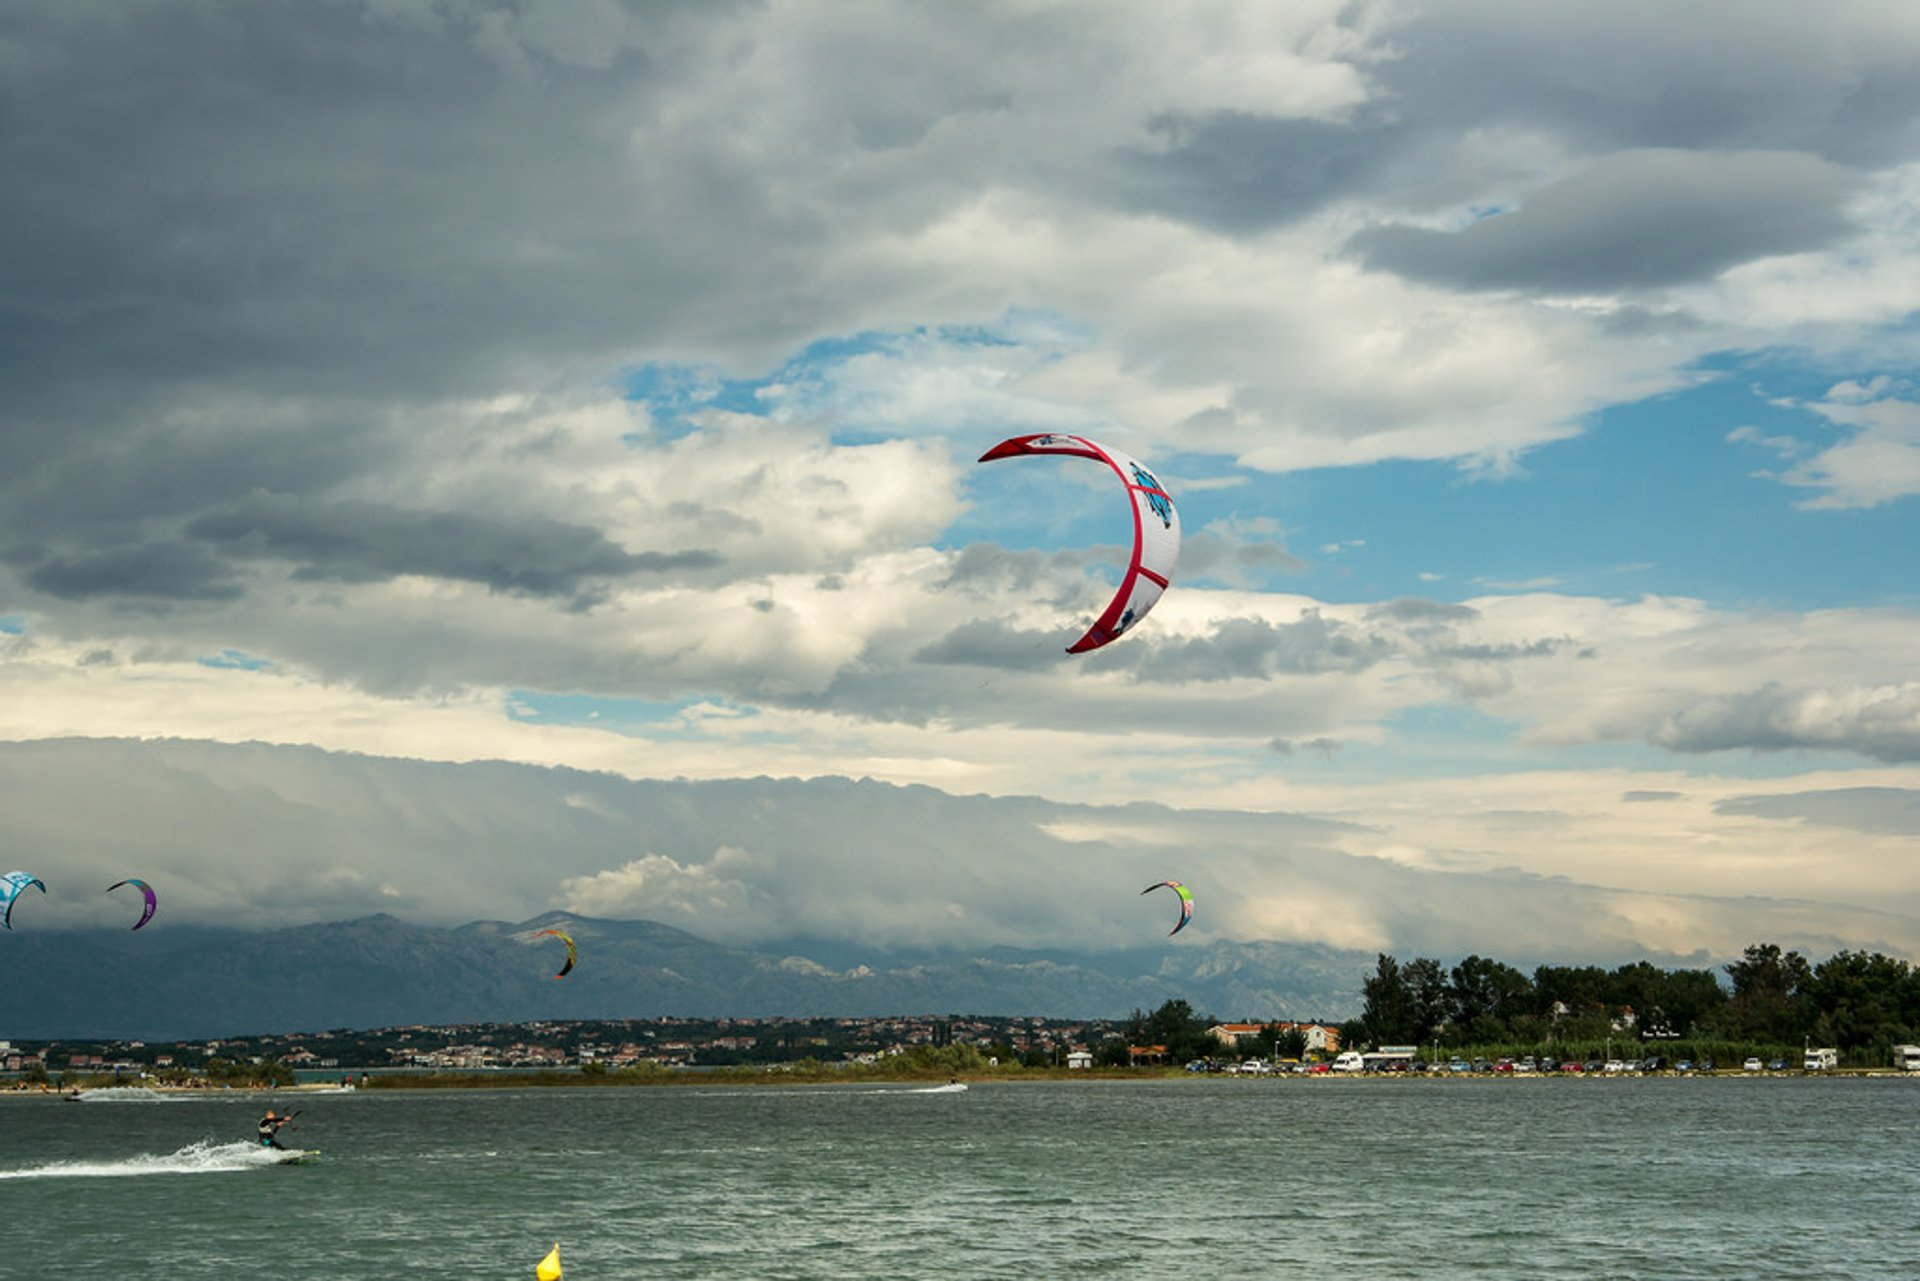 Kitesurfing and Windsurfing in Croatia - Best Season 2020